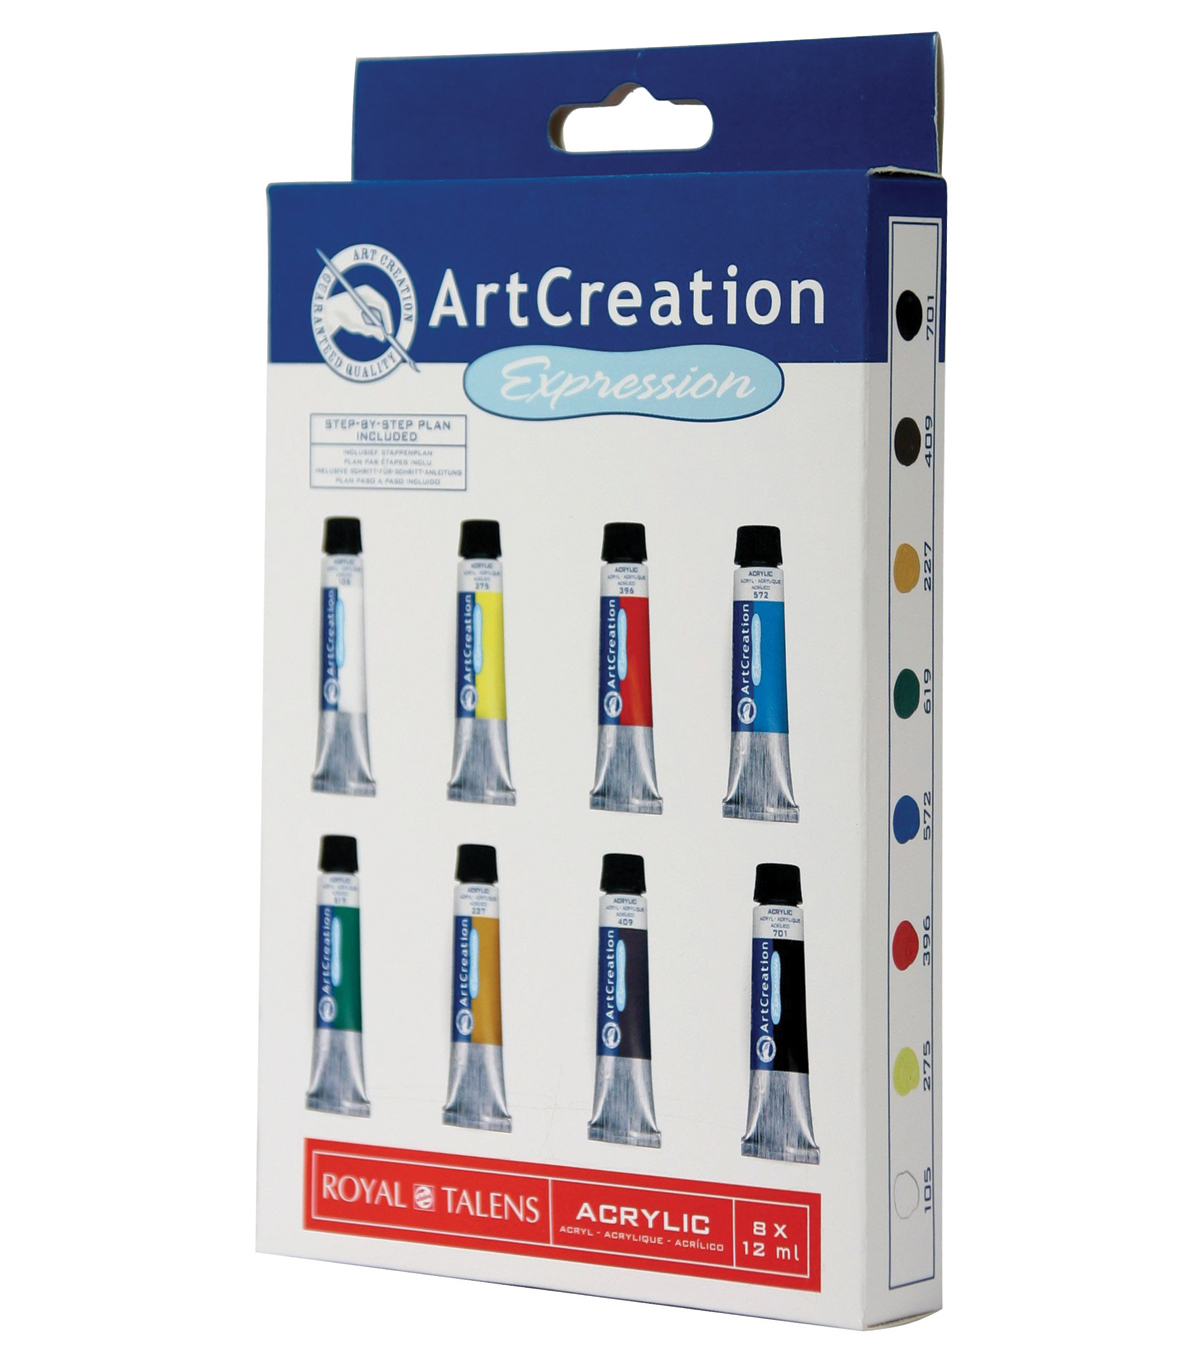 ArtCreation Expression Acrylic Color Sets 8